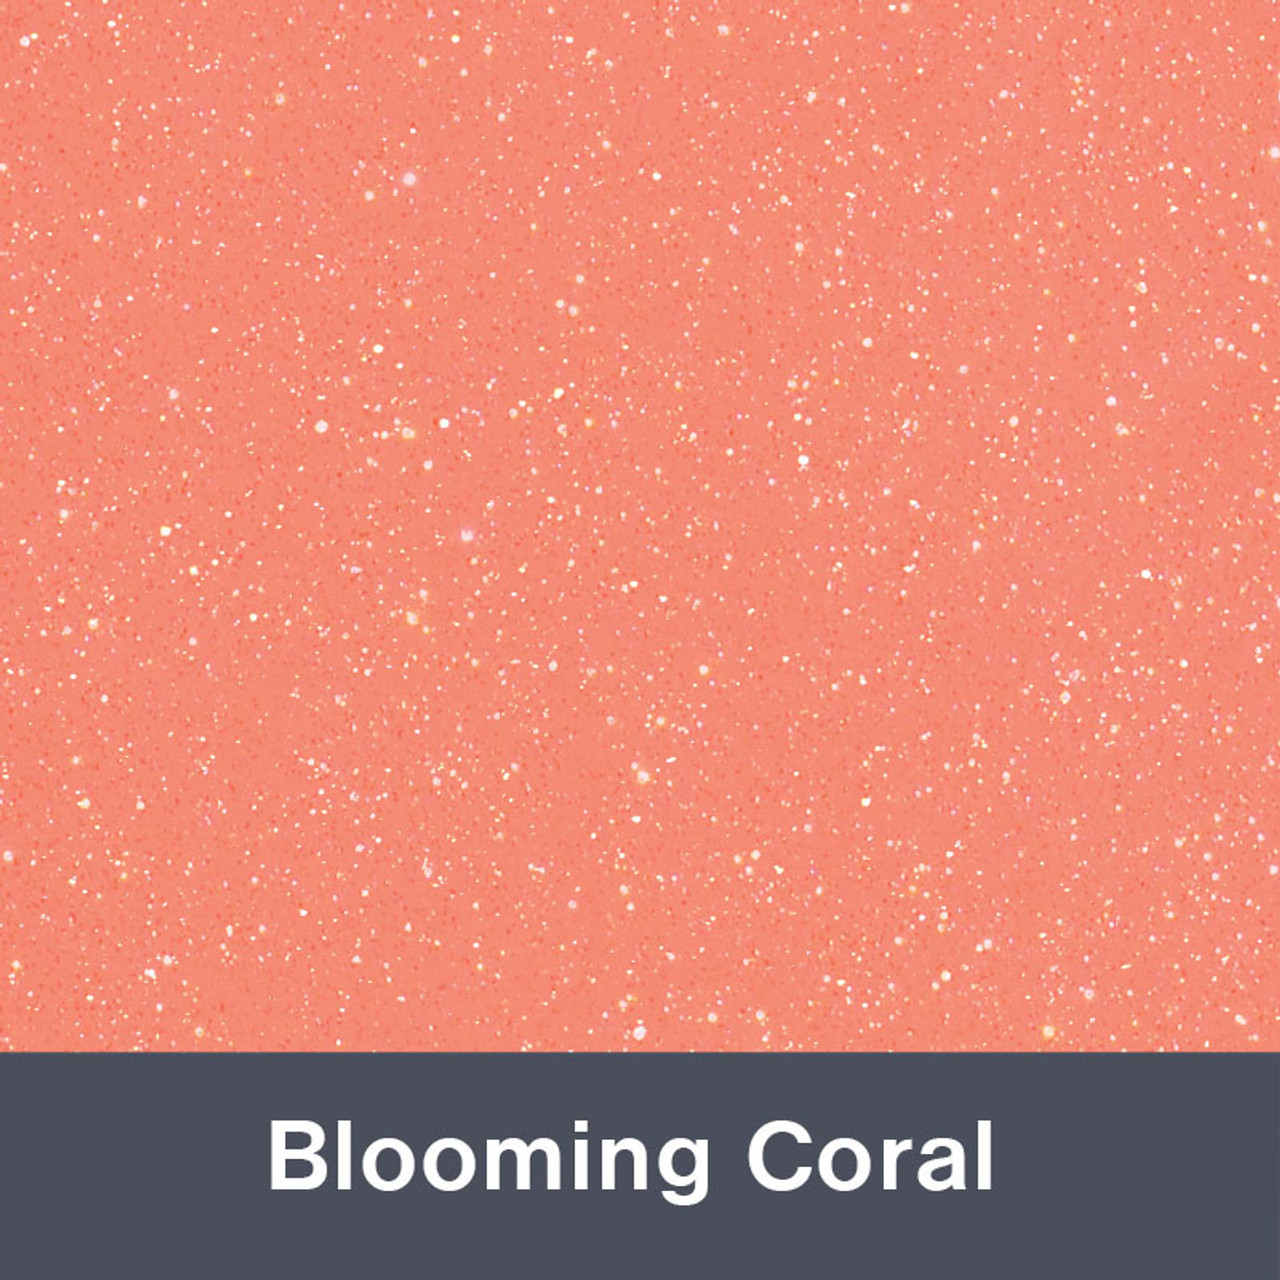 851 Blooming Coral Sparkle